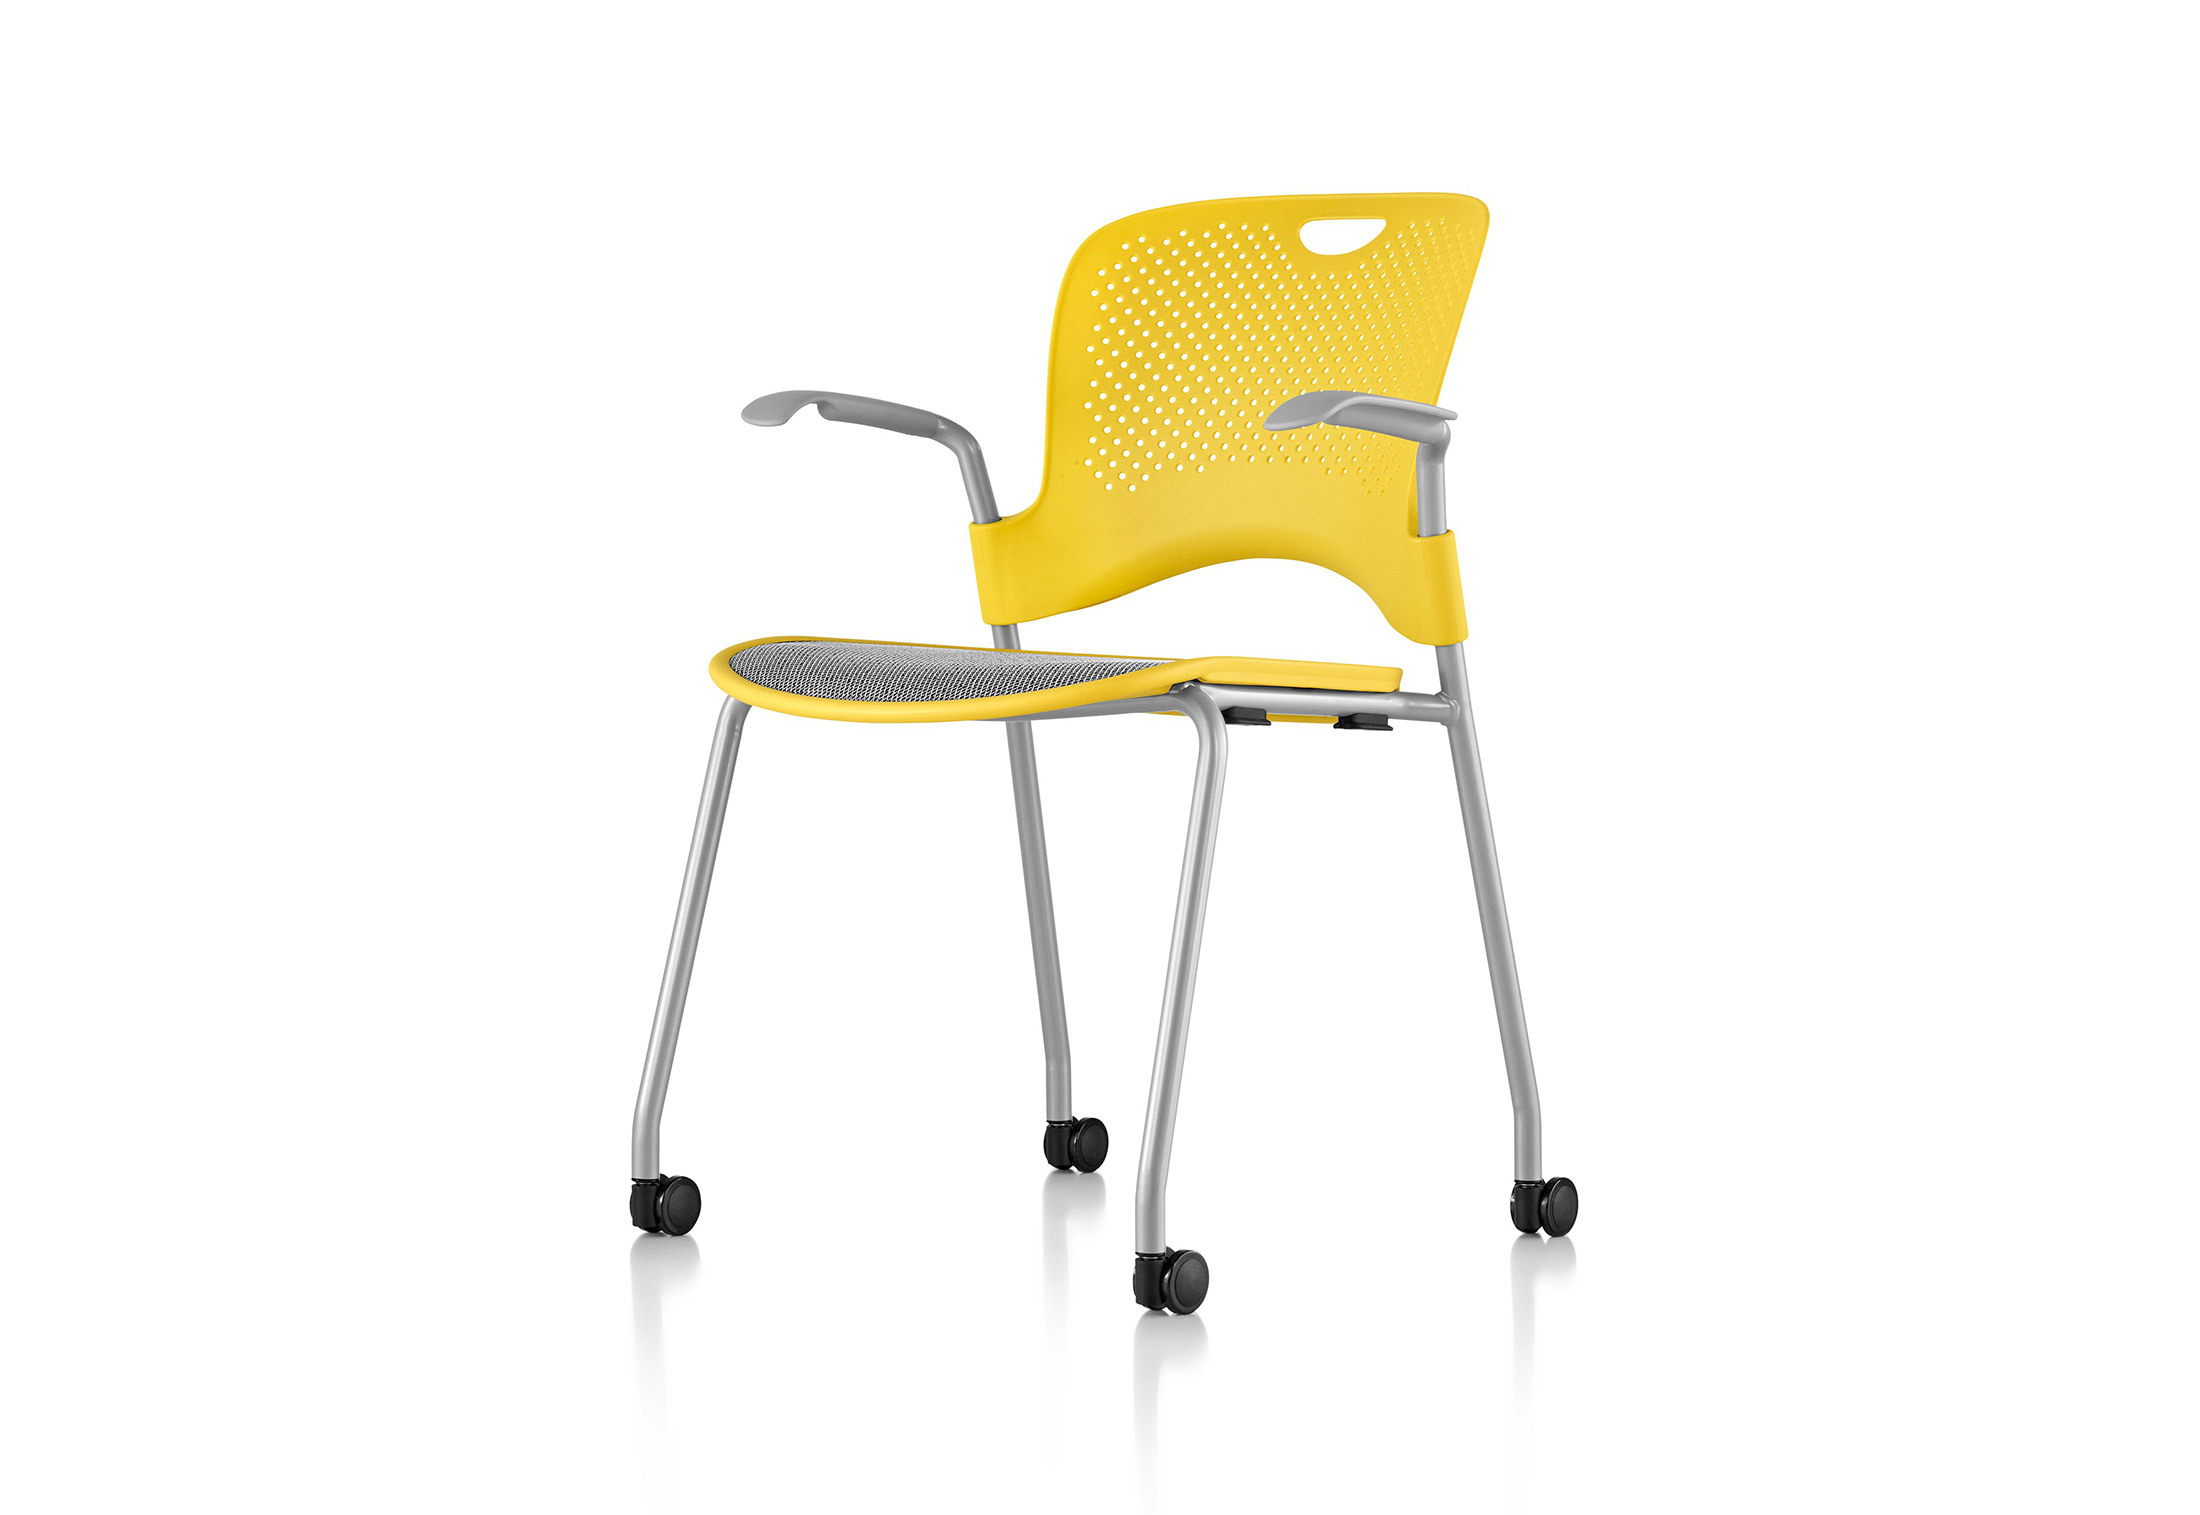 herman miller stacking chairs best ergonomic desk 2018 caper chair by stylepark